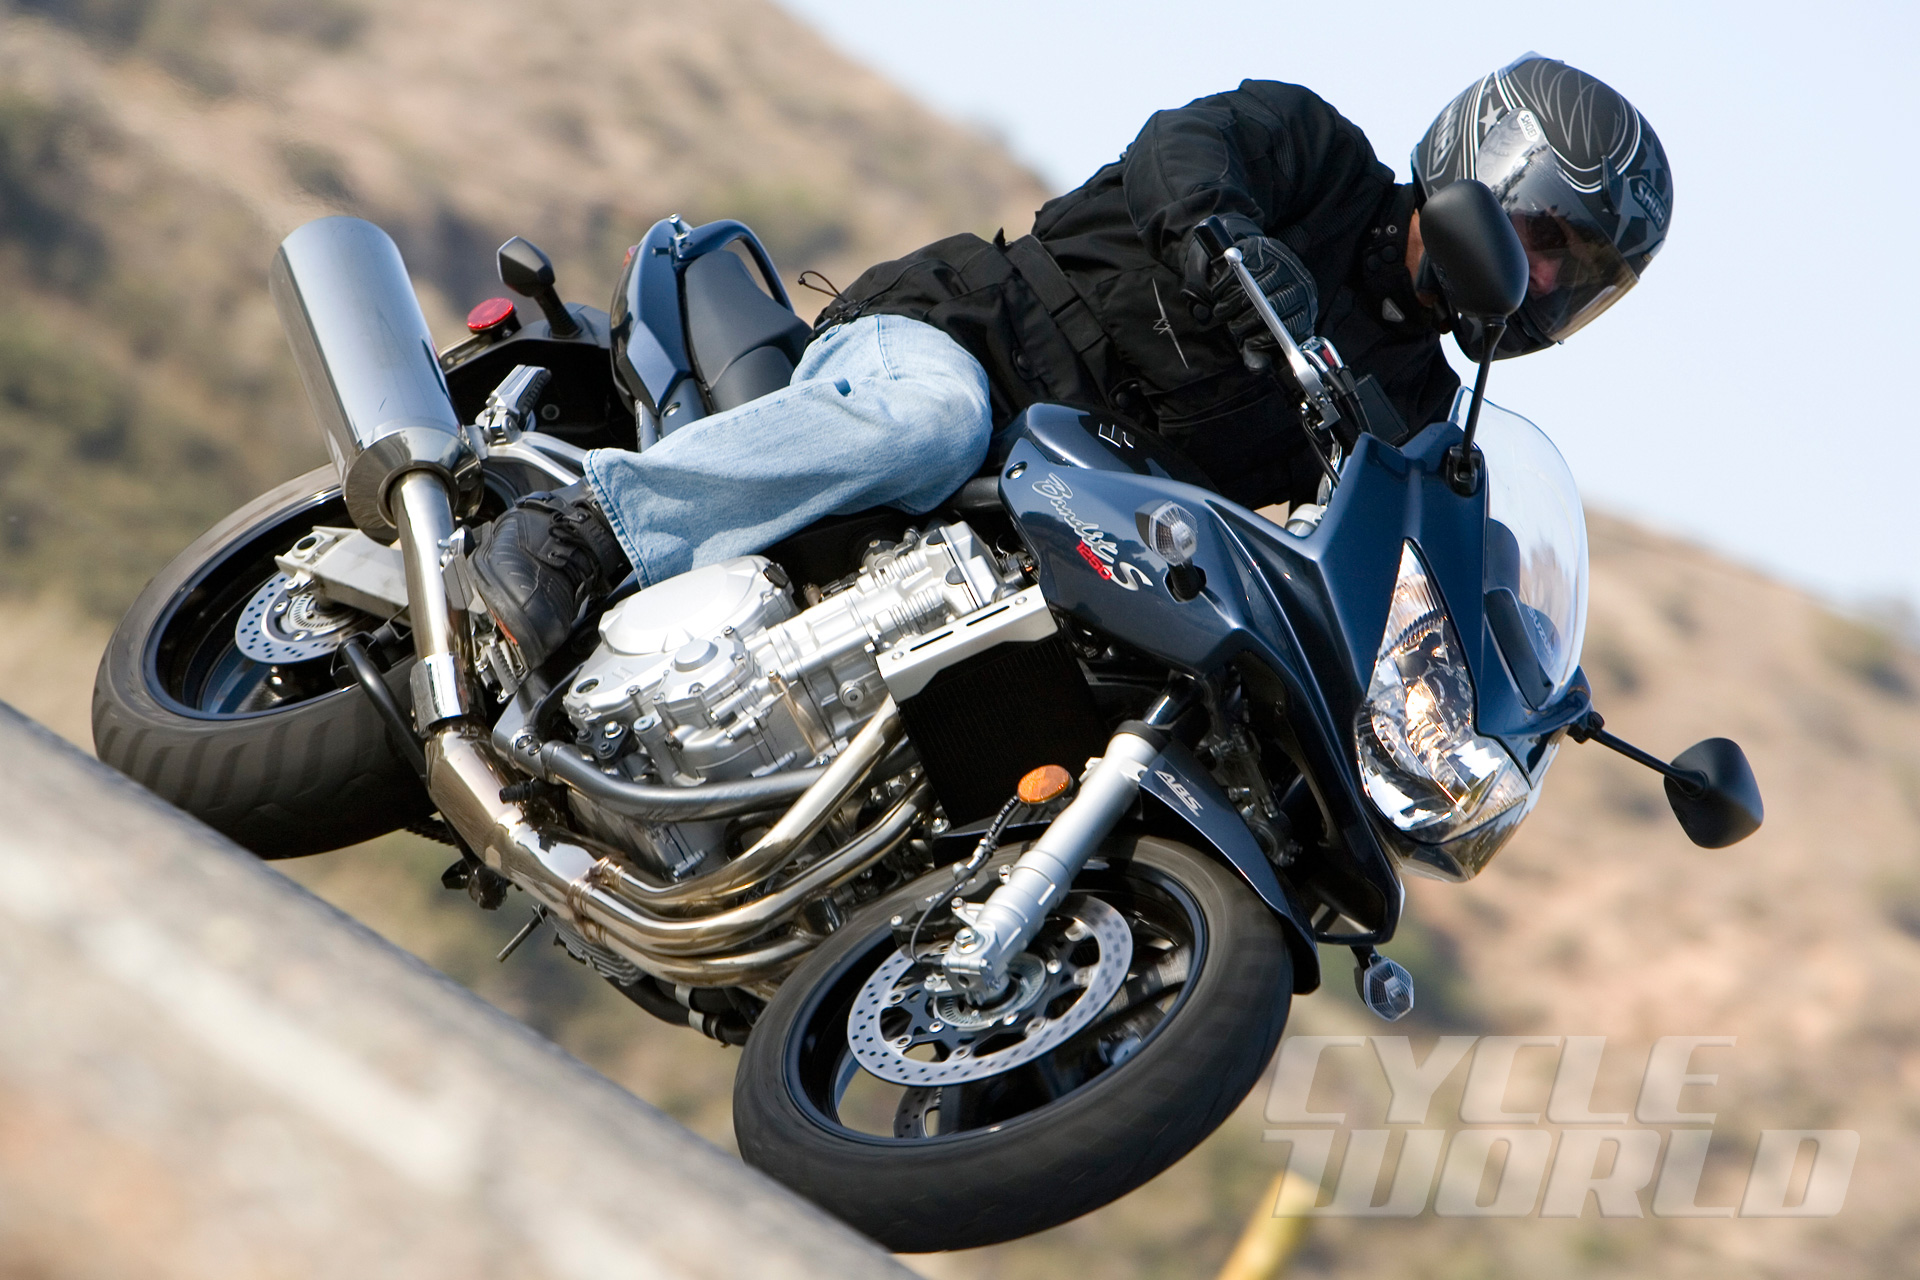 Suzuki Bandit 1250S vs  Yamaha FZ1- Comparison Test Review